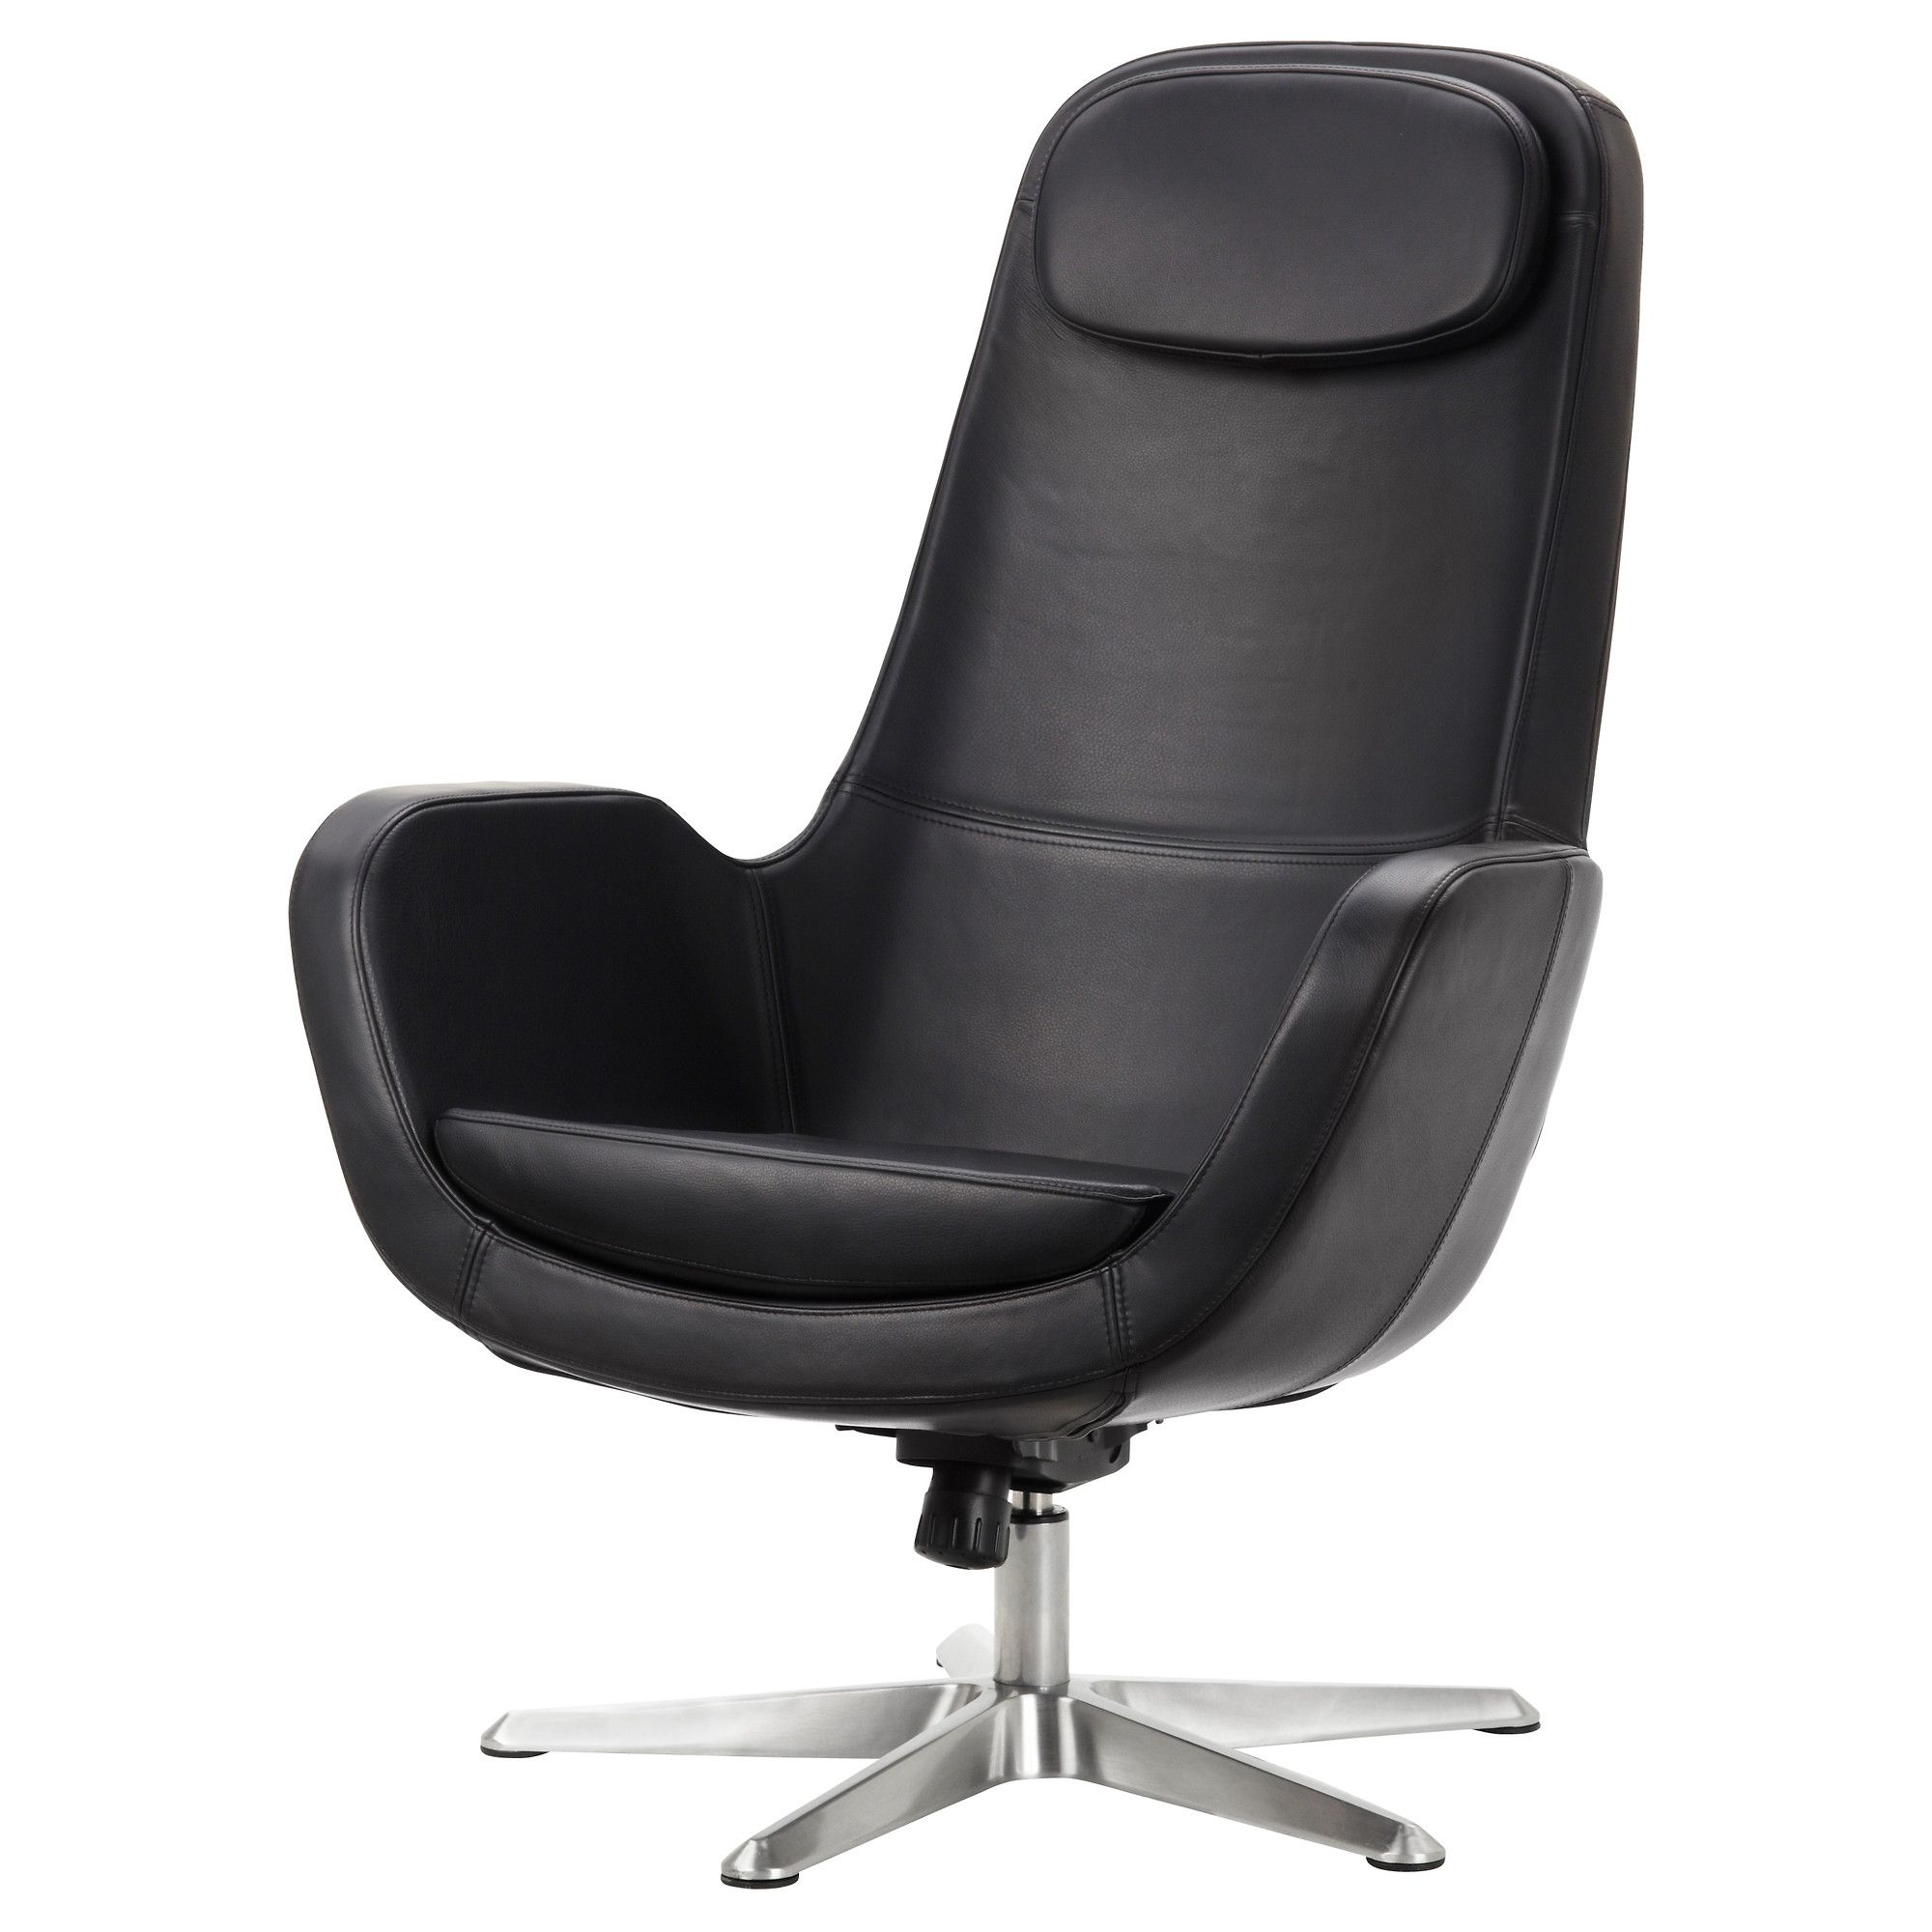 swivel chair dimensions steel shot arvika 499 00 product width 33 1 8 depth 2 height 43 4 seat 20